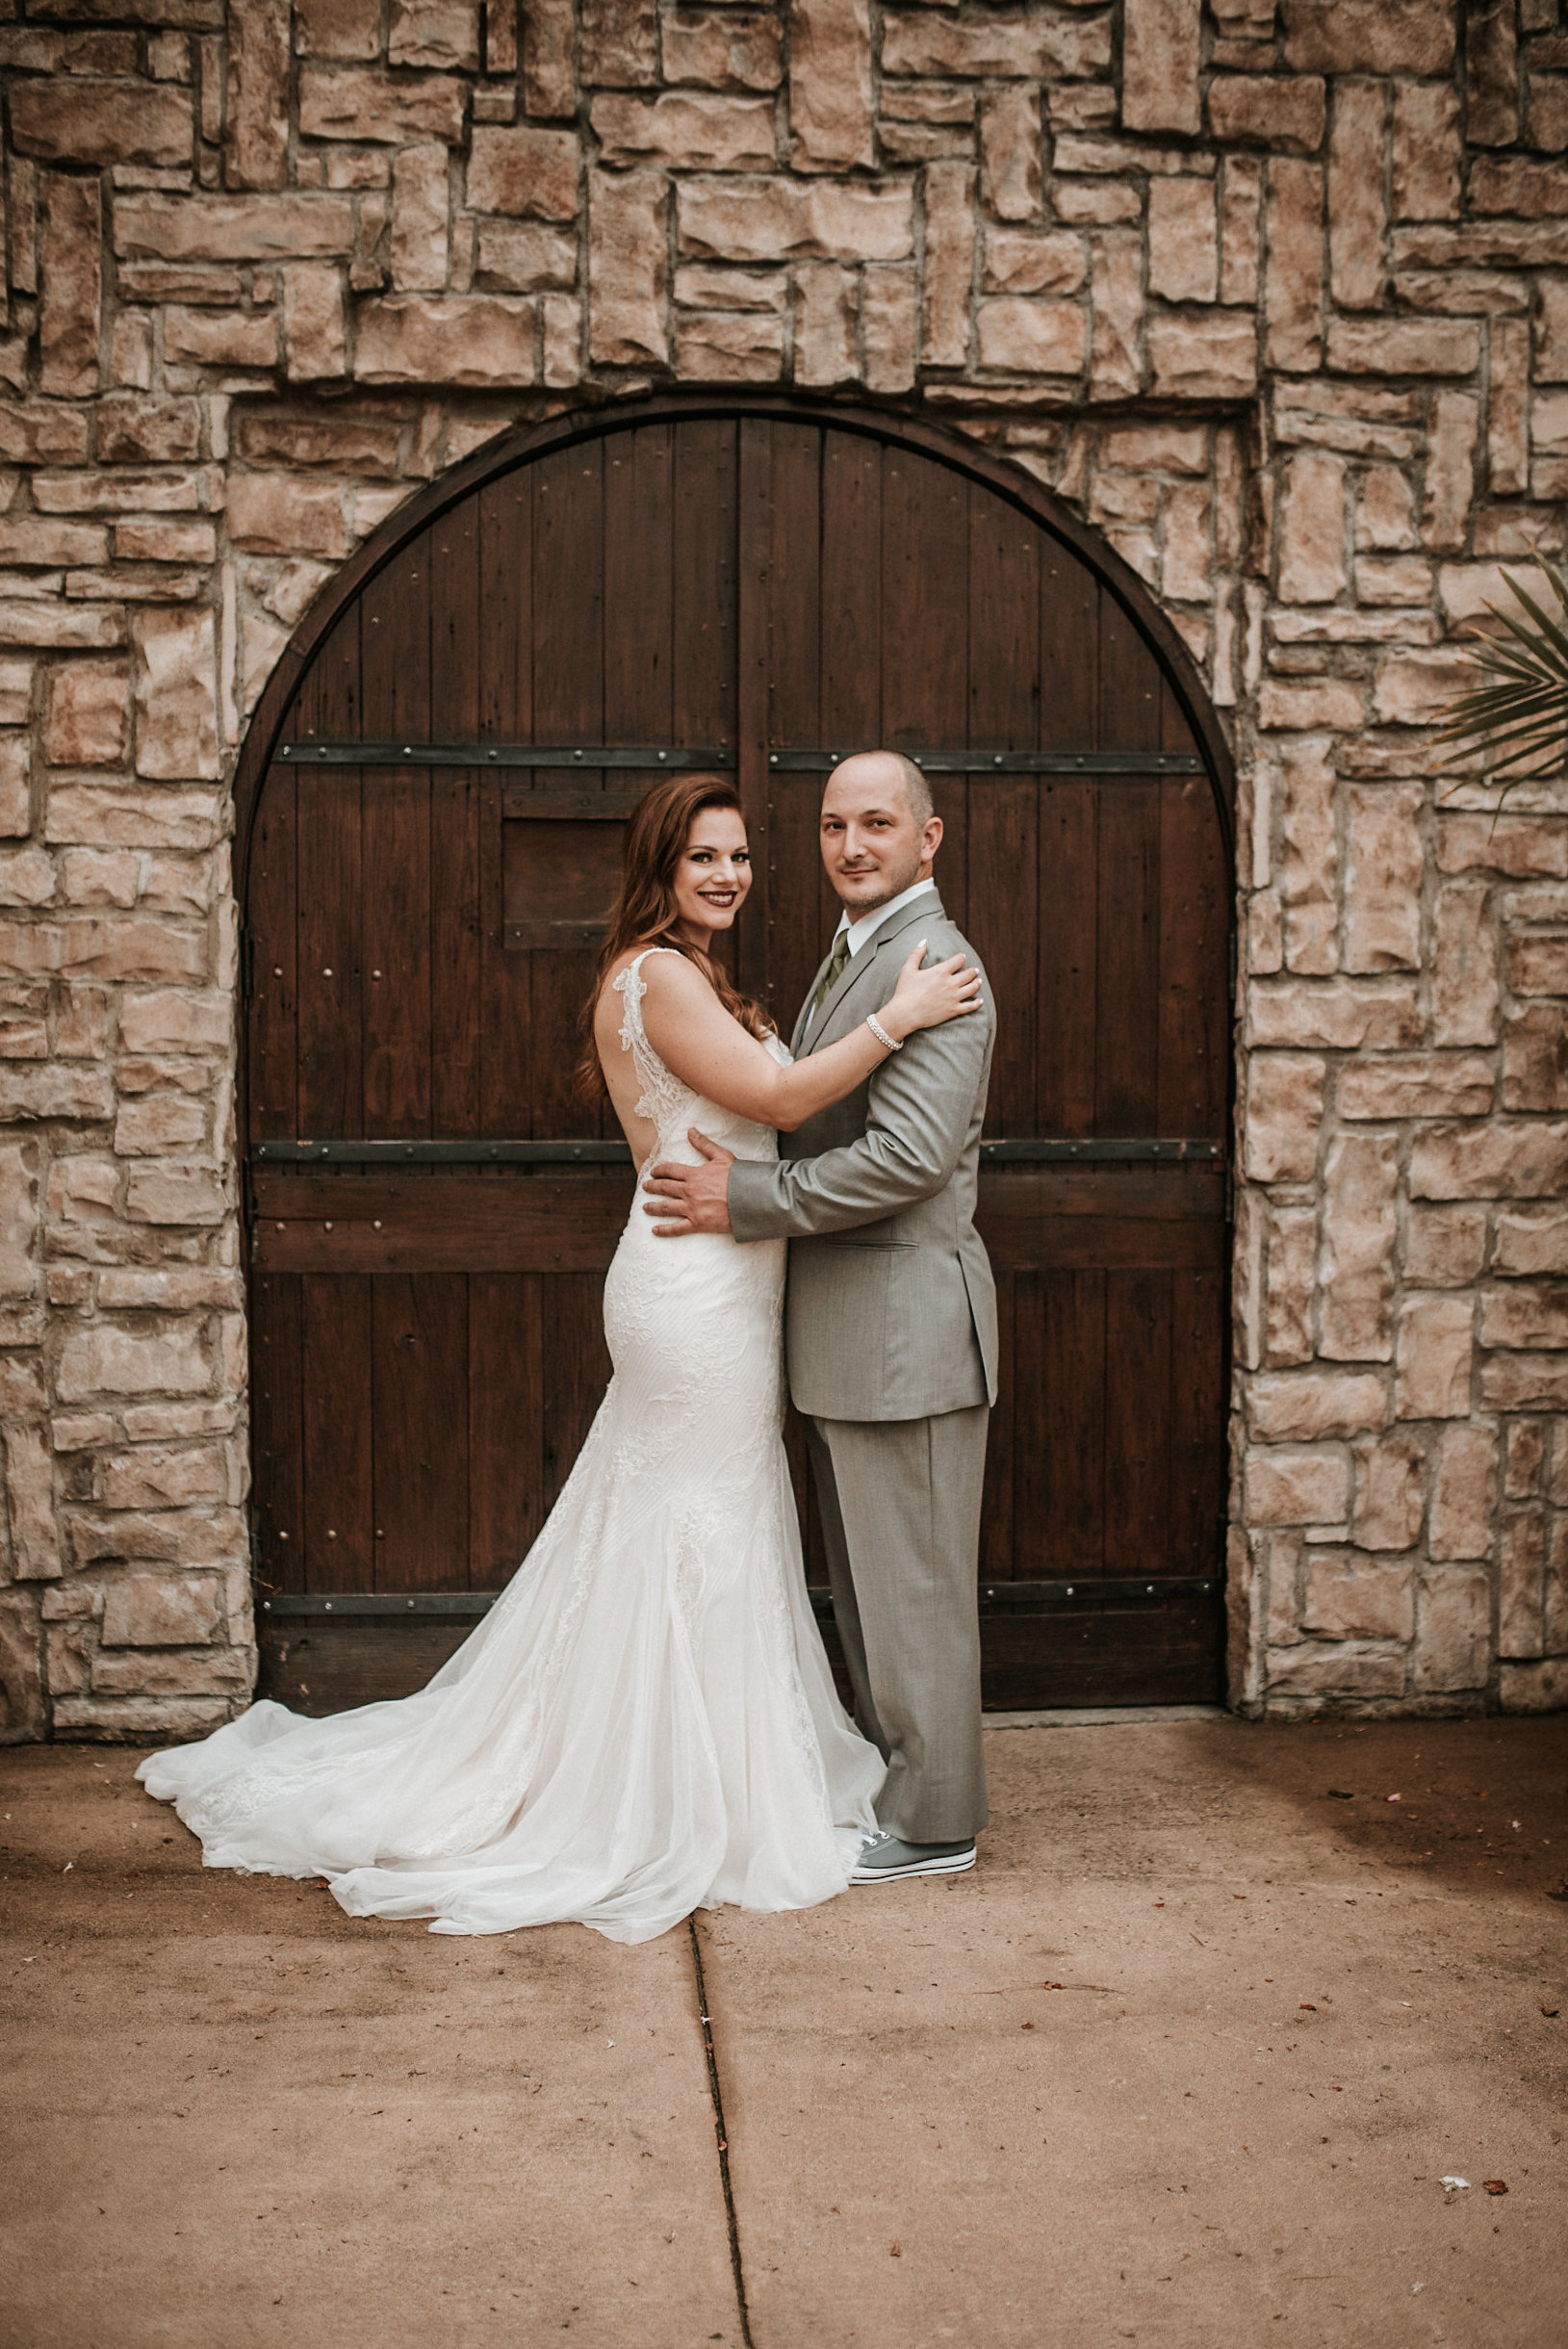 Bride and groom in front of winery door